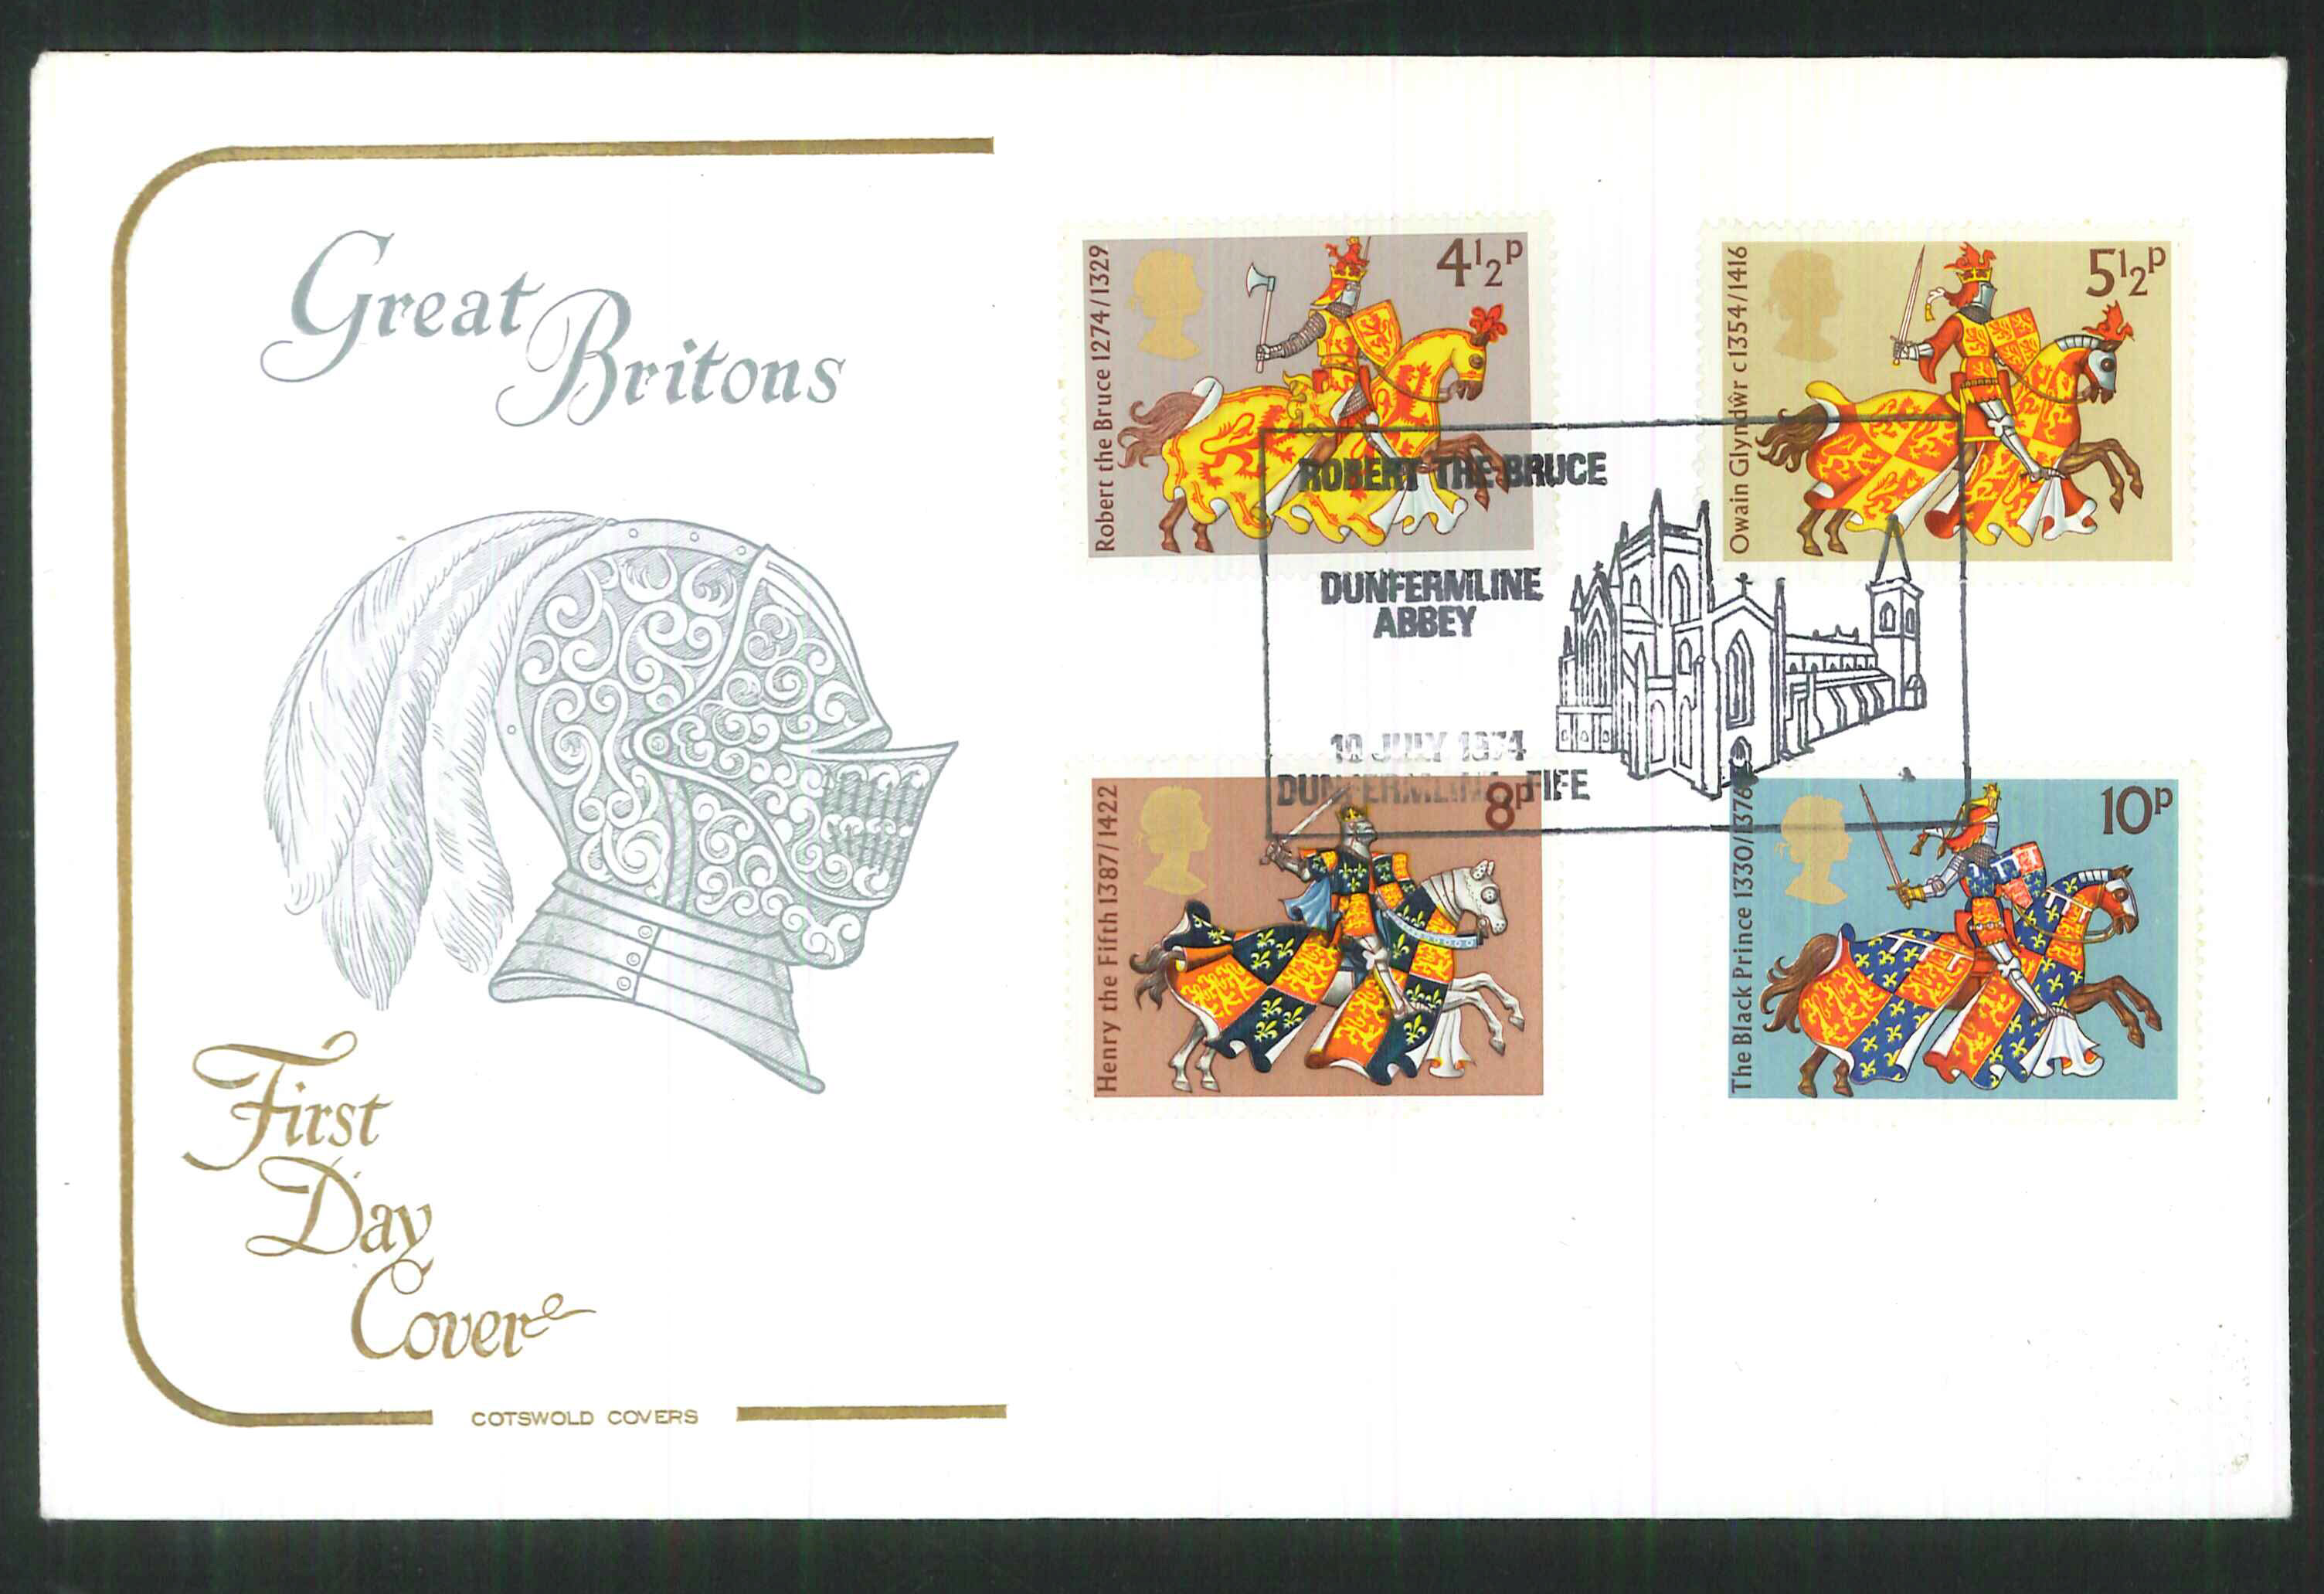 1974 -Cotswold FDC Great Britons Dunfernline Abbey Postmark